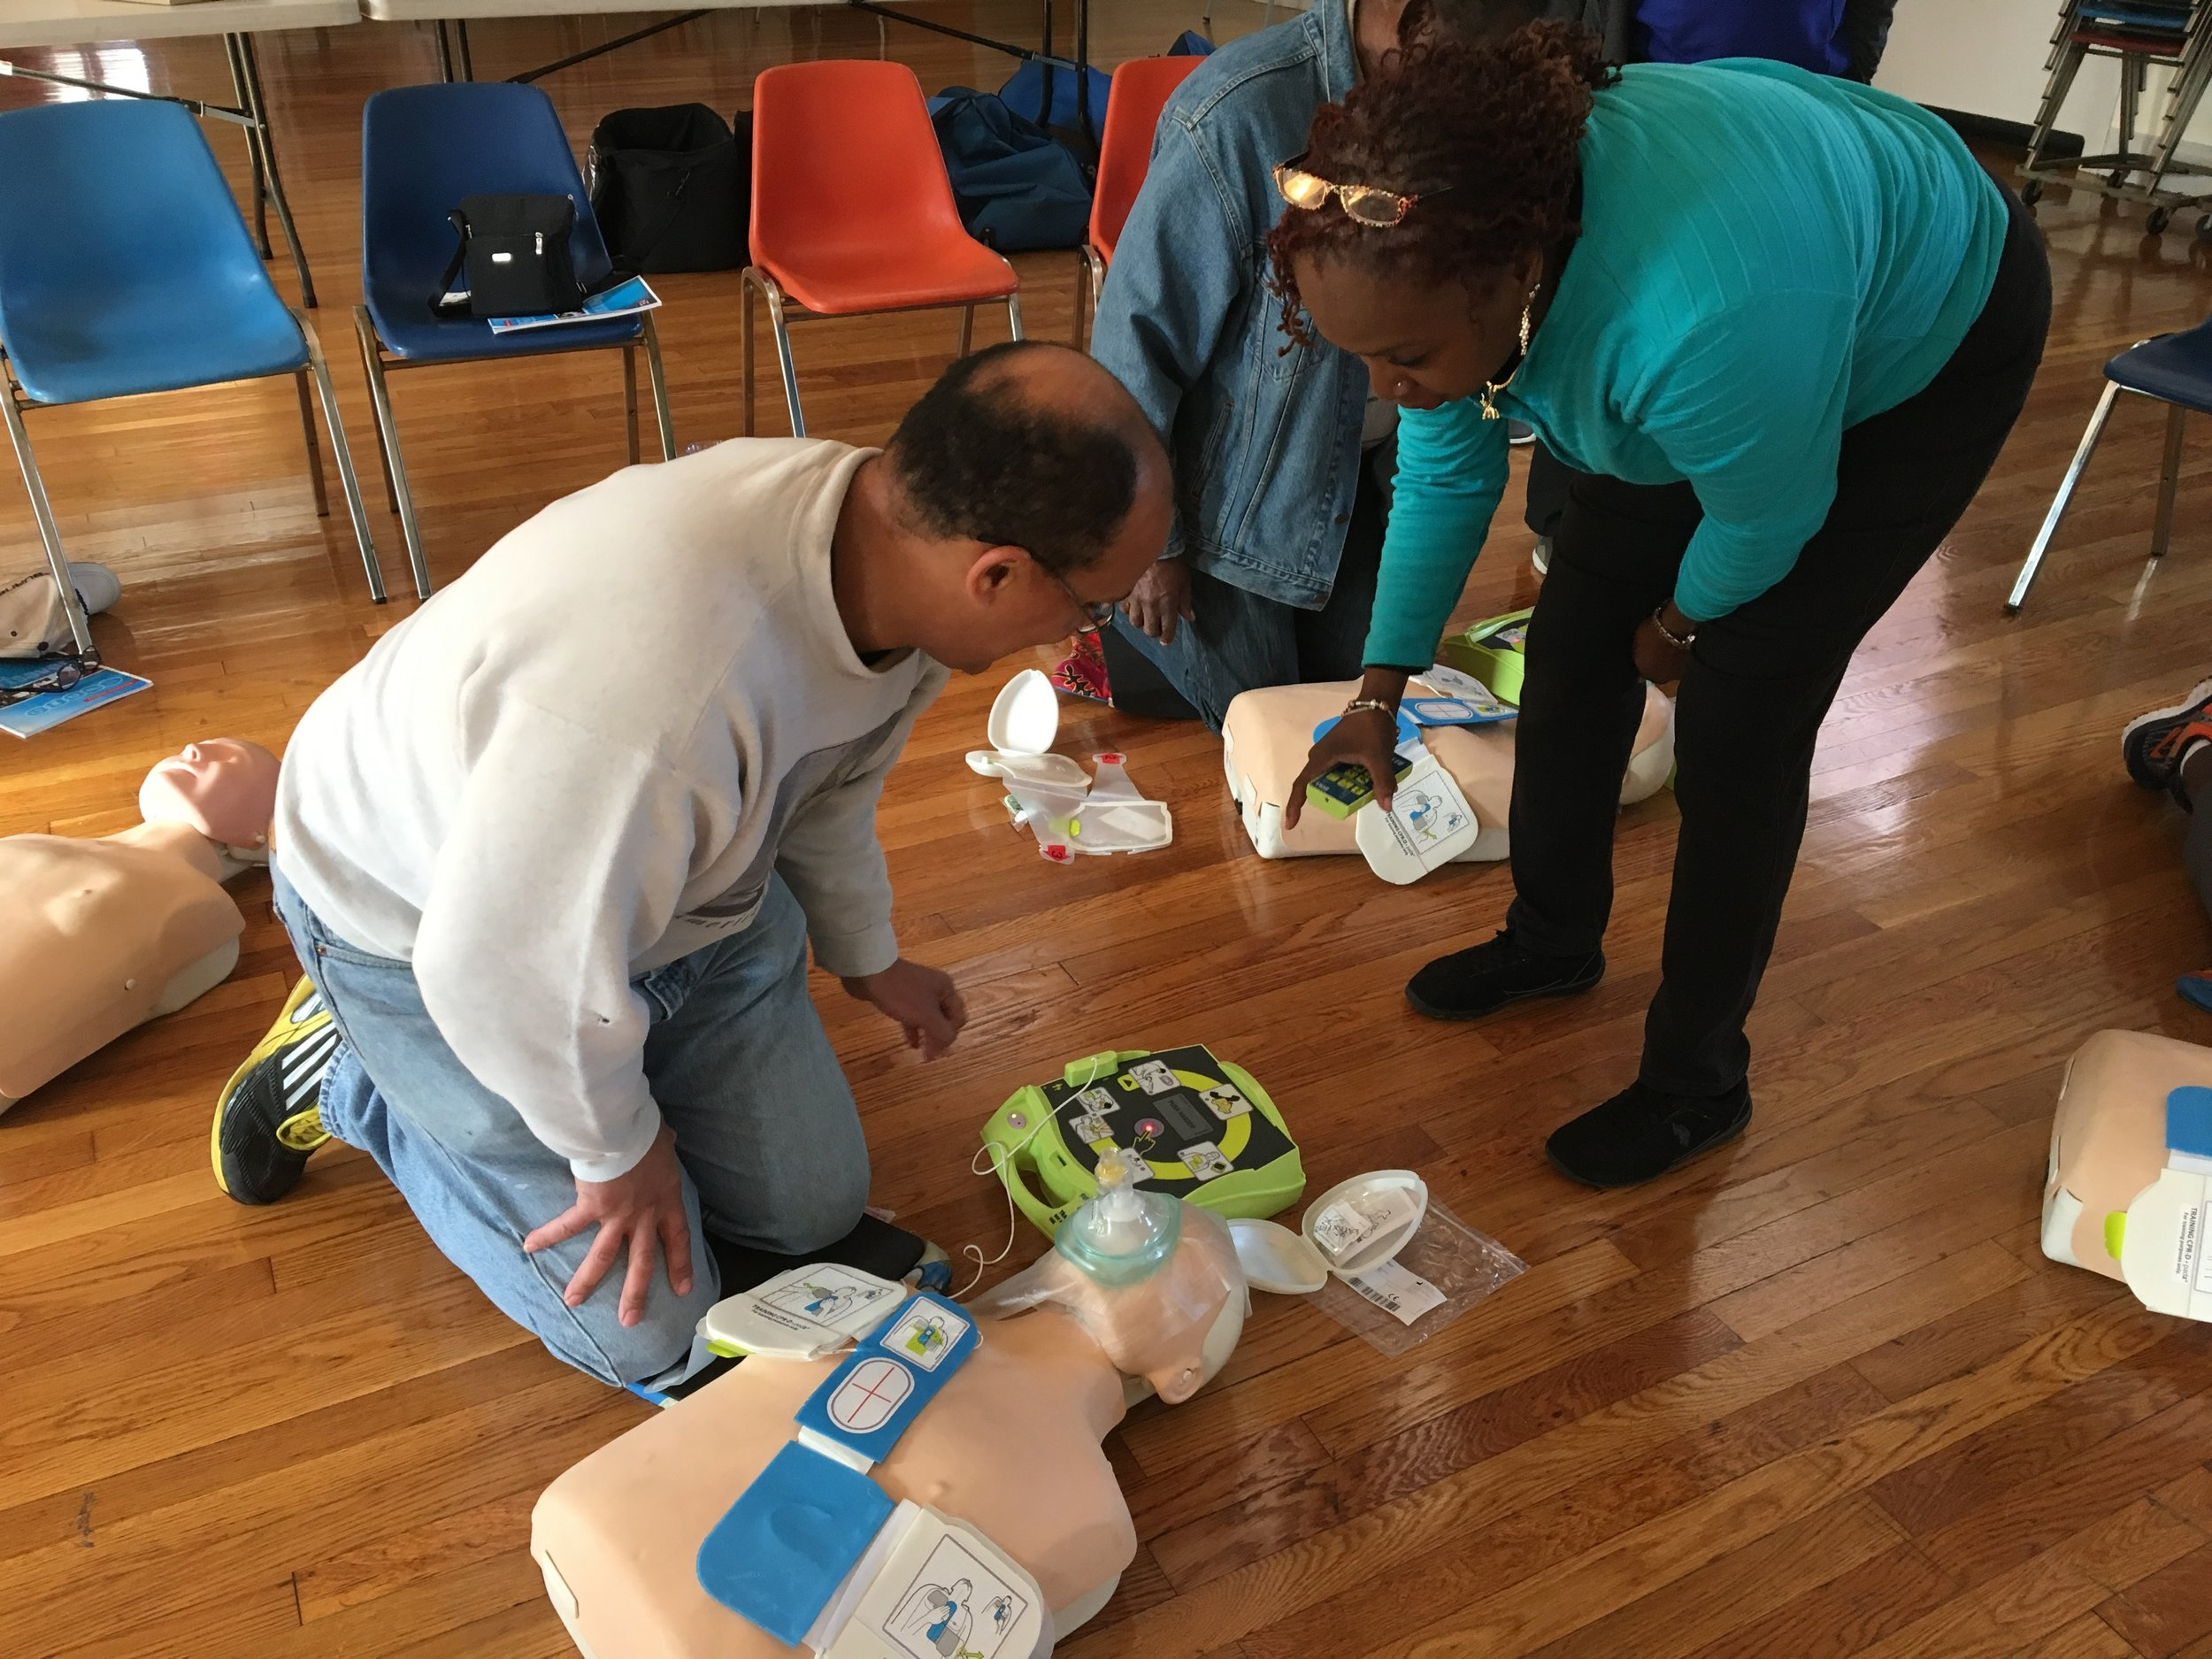 Parkway member learns how to use an Automated External Defribillator (AED).